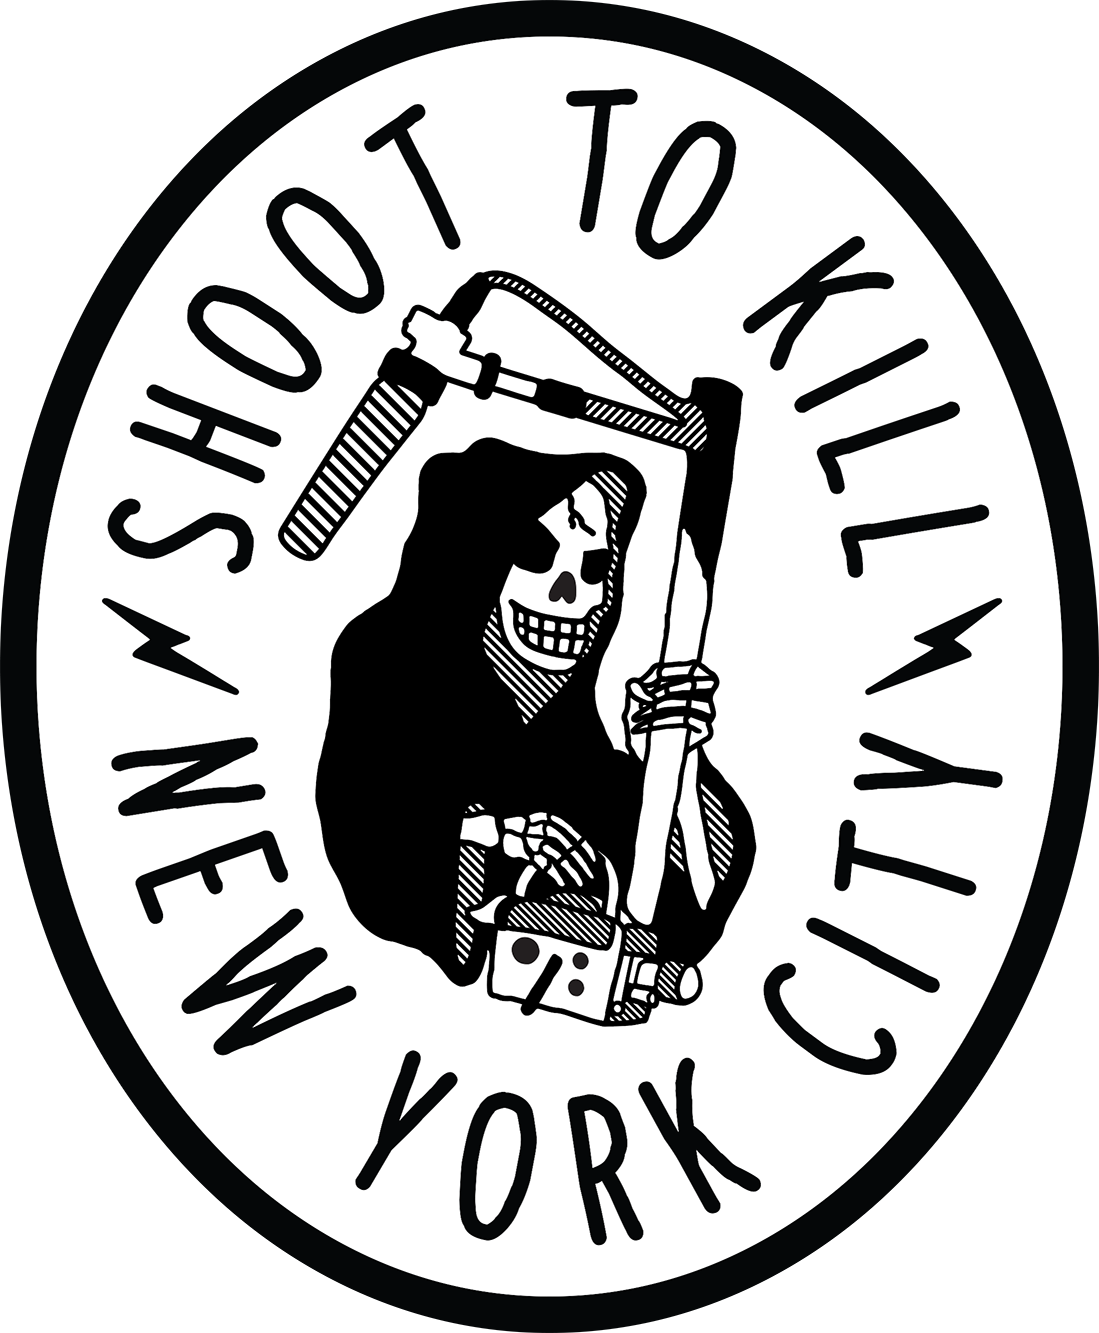 Shoot To Kill NYC